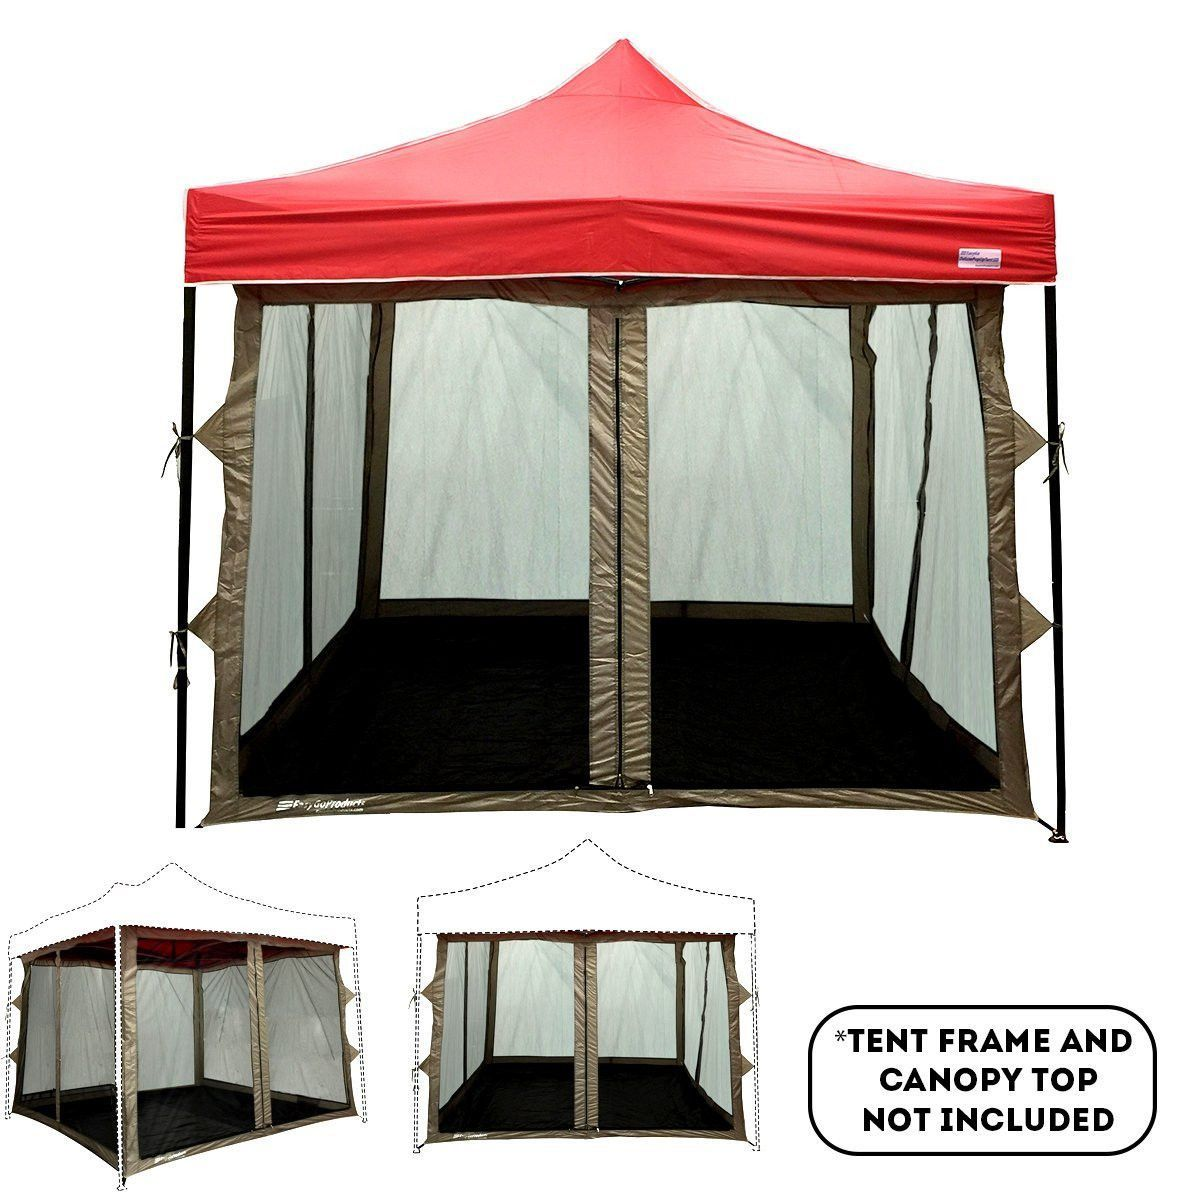 Inner Pop Up Tent Zippered Entry Full Mesh Walls Pvc Floor Ceiling Screen Tent Tent Room Pop Up Tent